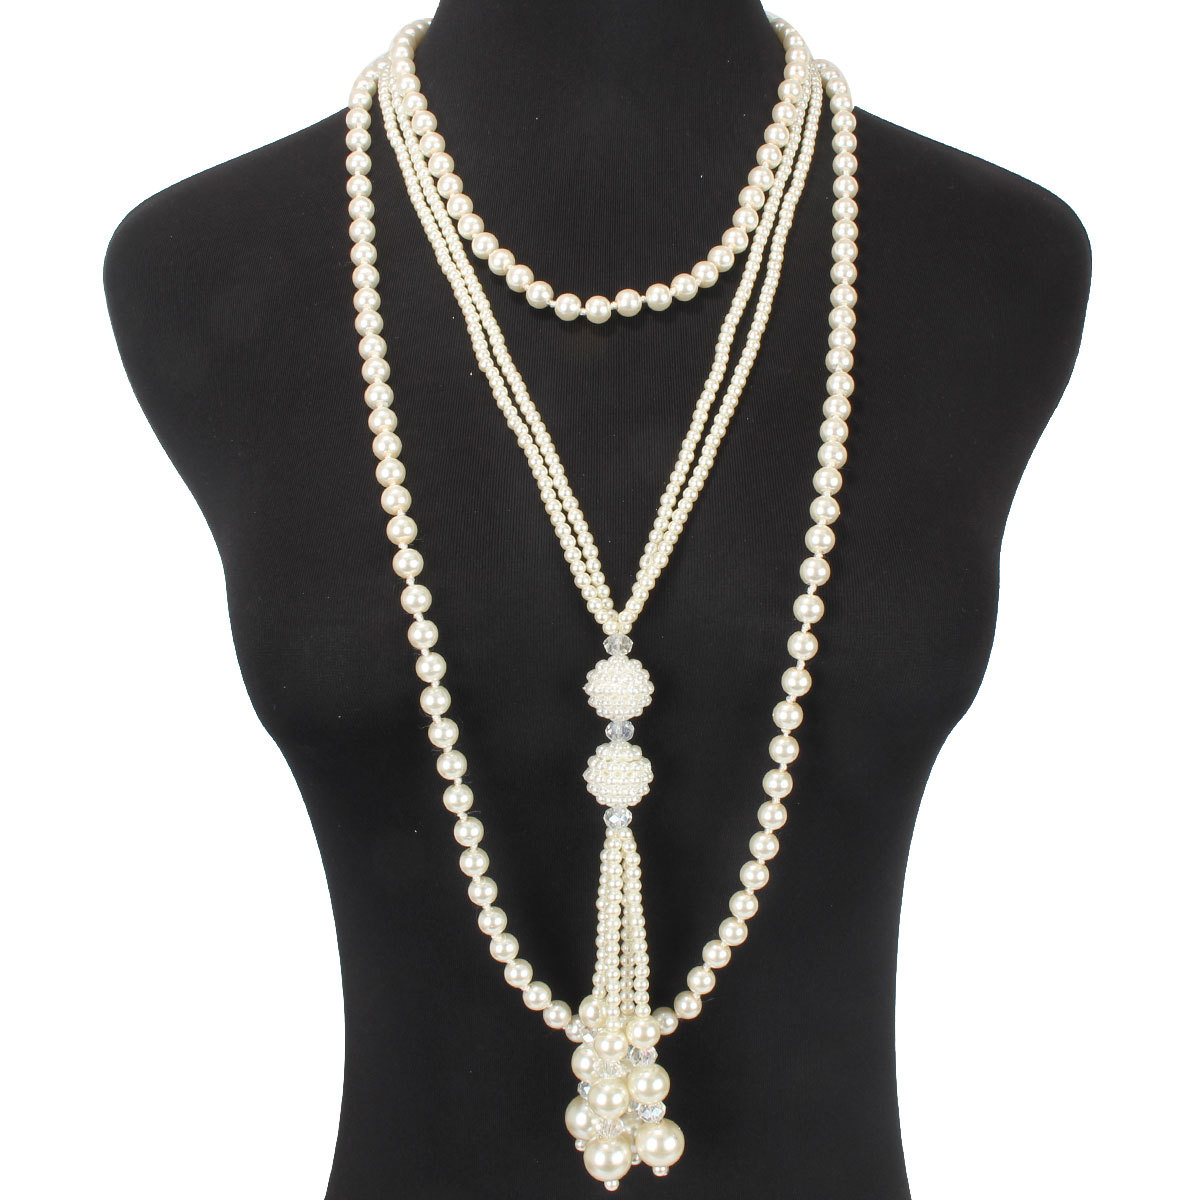 New fashion necklace jewelry pendant pearl necklace wholesale NHCT211616